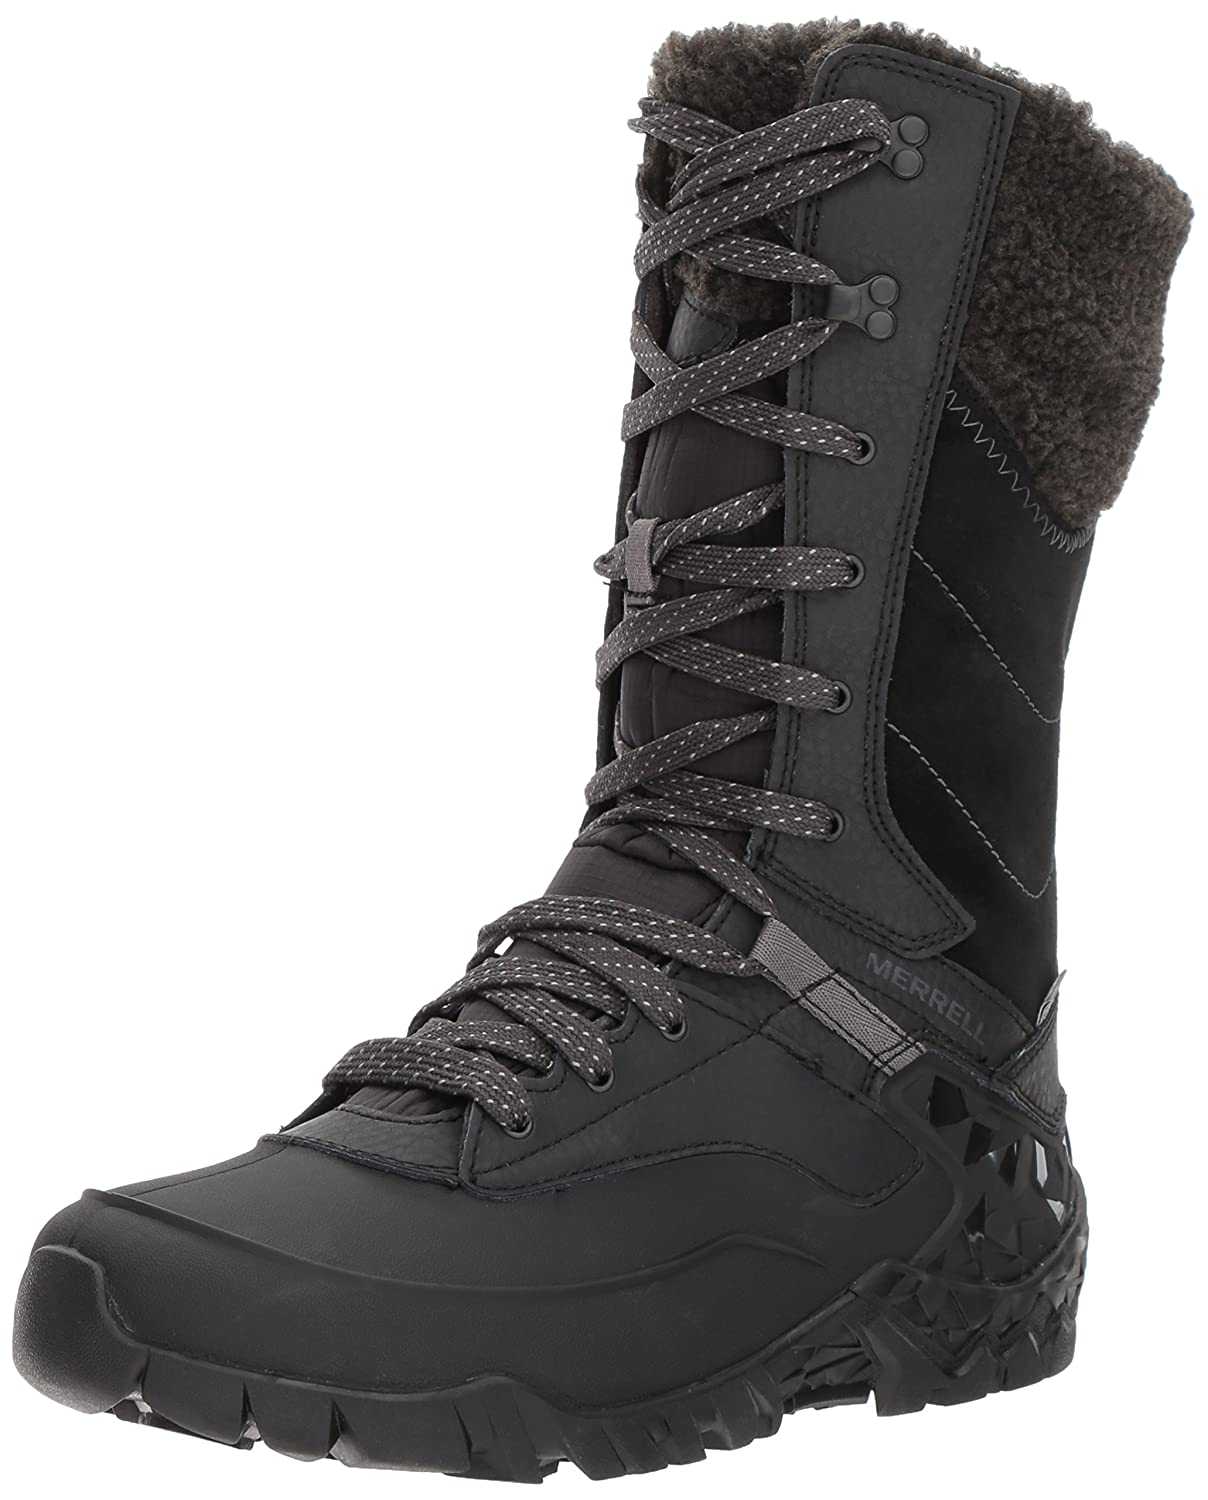 Merrell Women's Aurora Tall Ice Plus Waterproof Snow Boot B018WFAUBI 8.5 B(M) US|Black